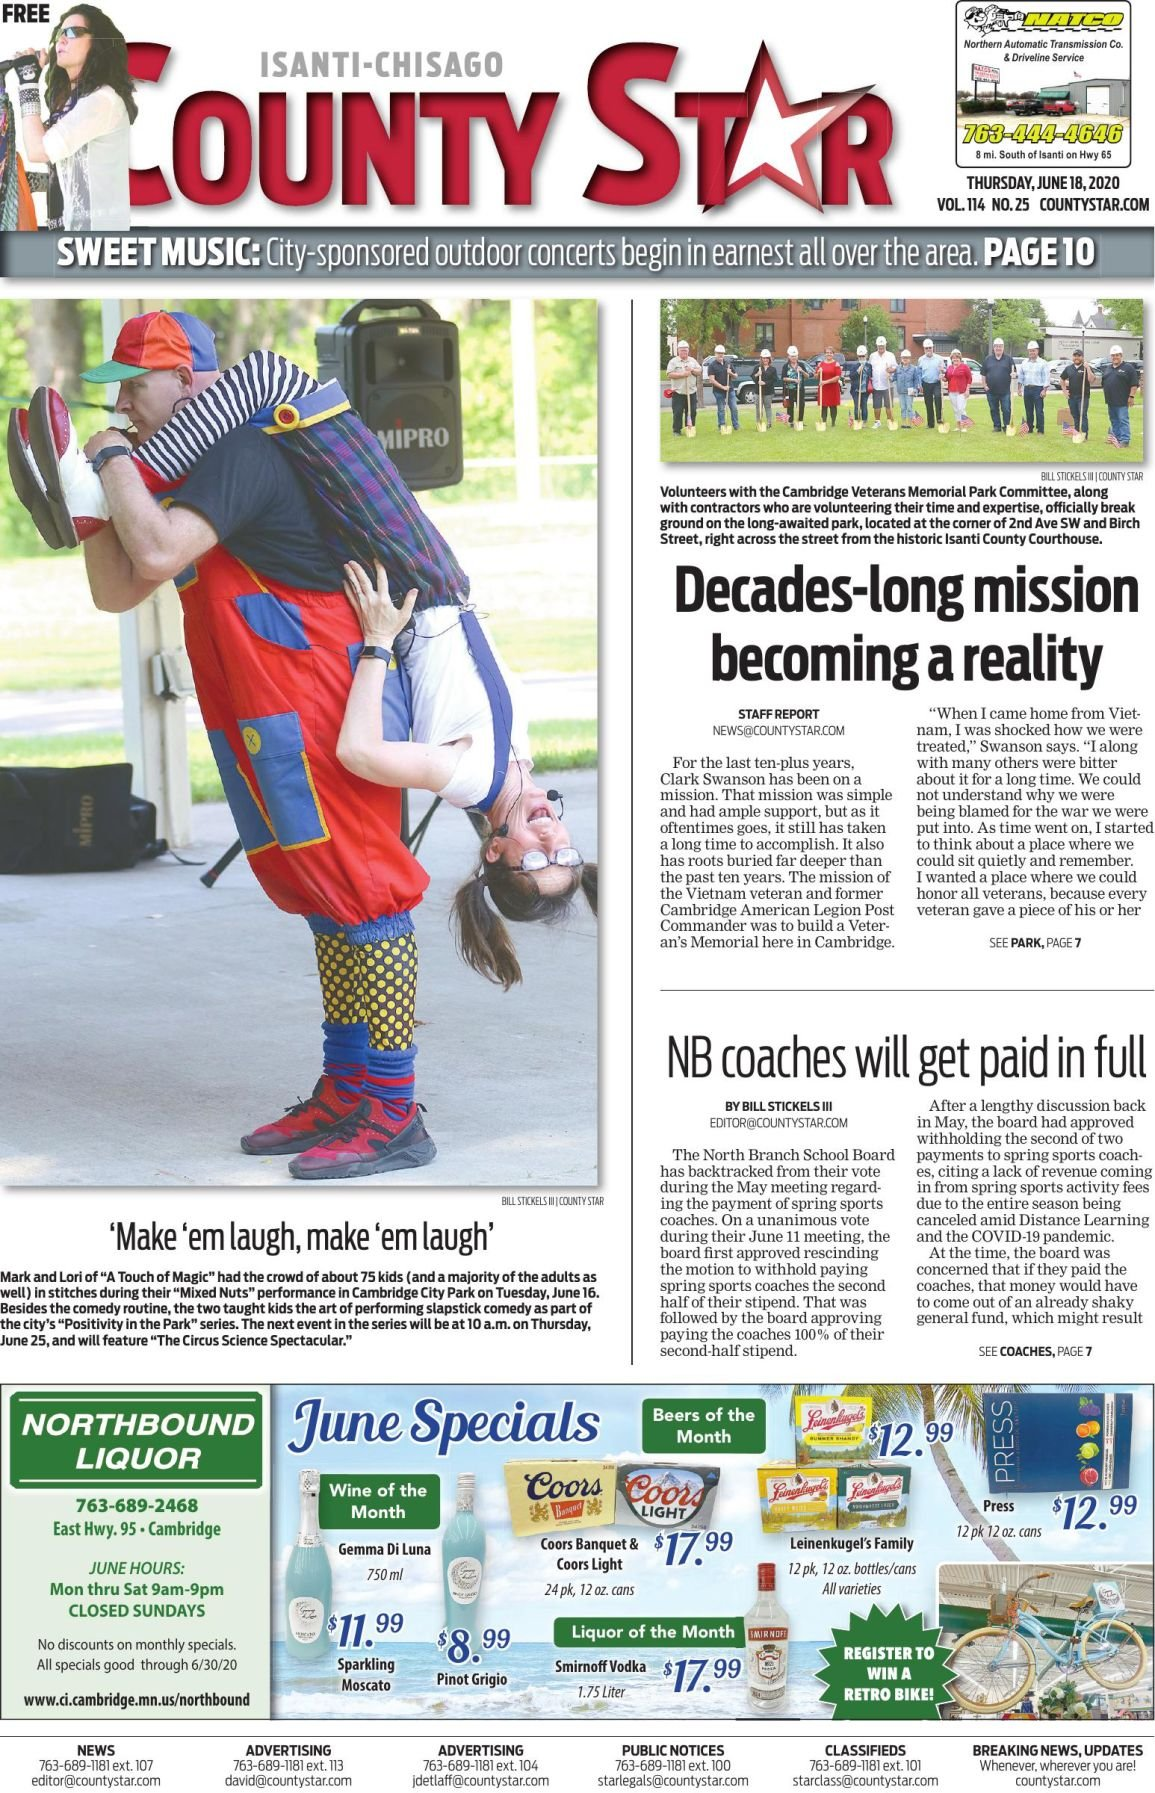 Isanti-Chisago County Star June 18, 2020 e-edition